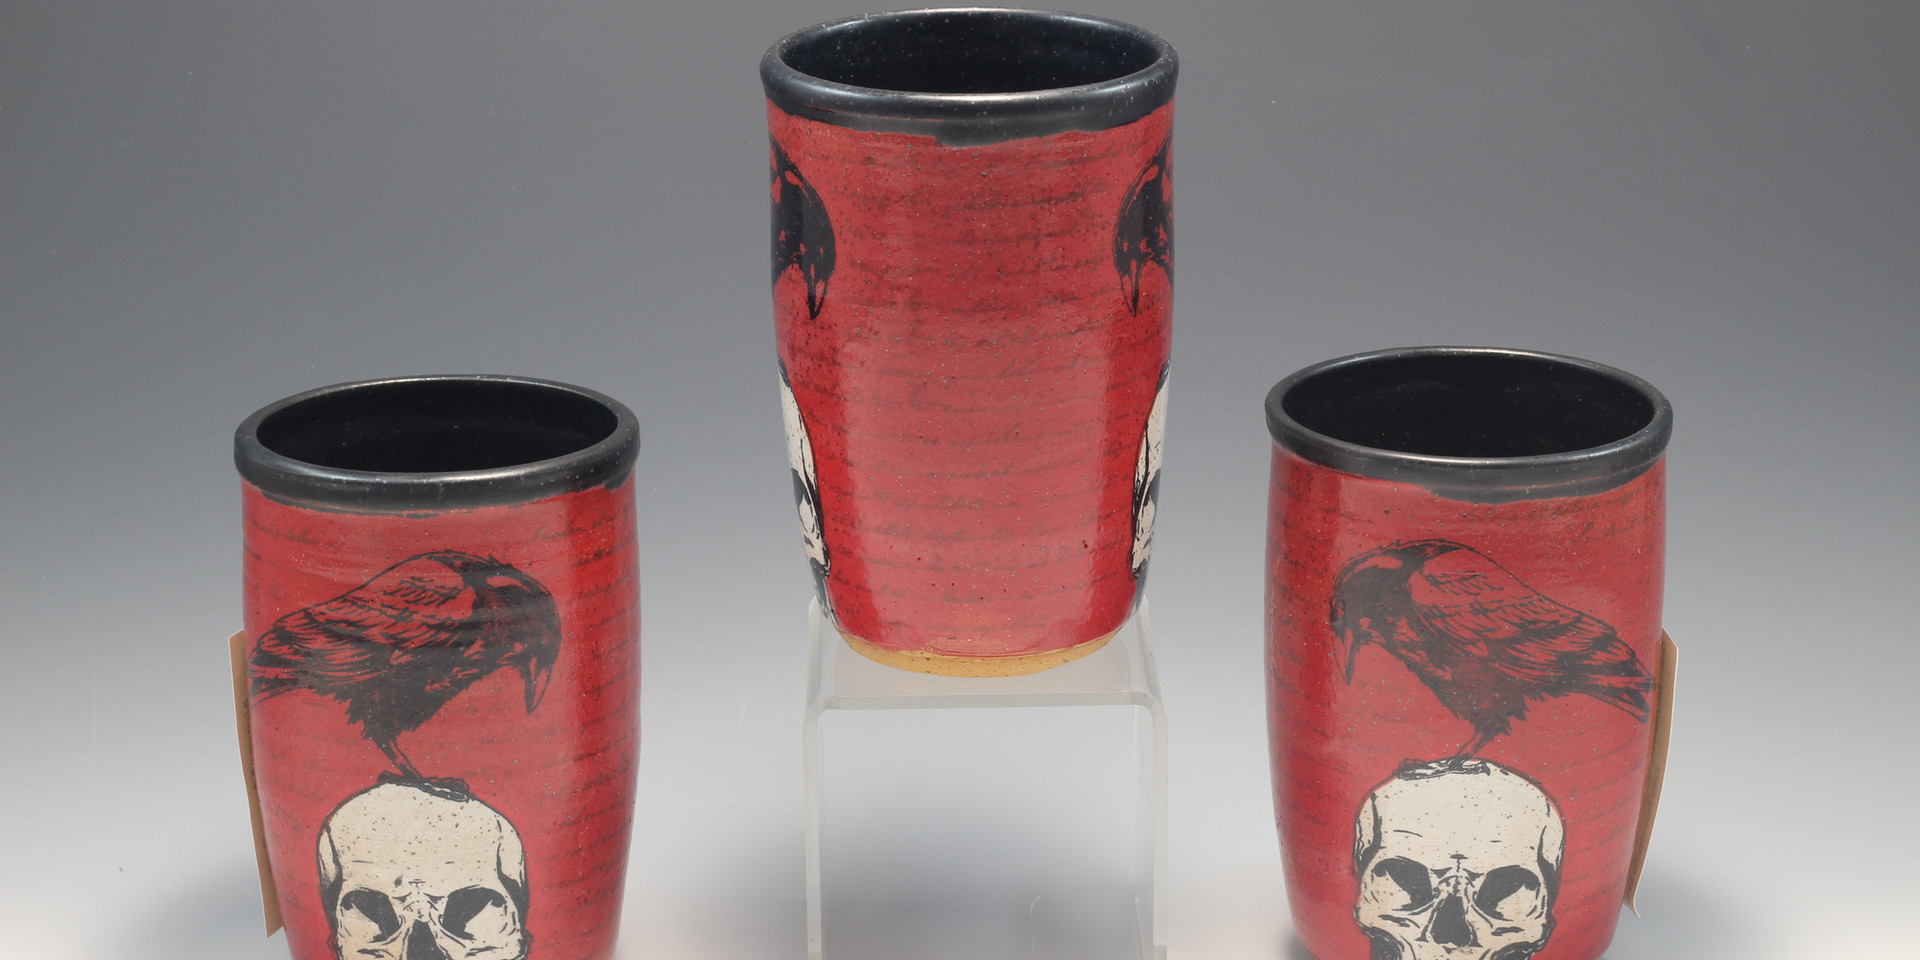 NeverMore Cups